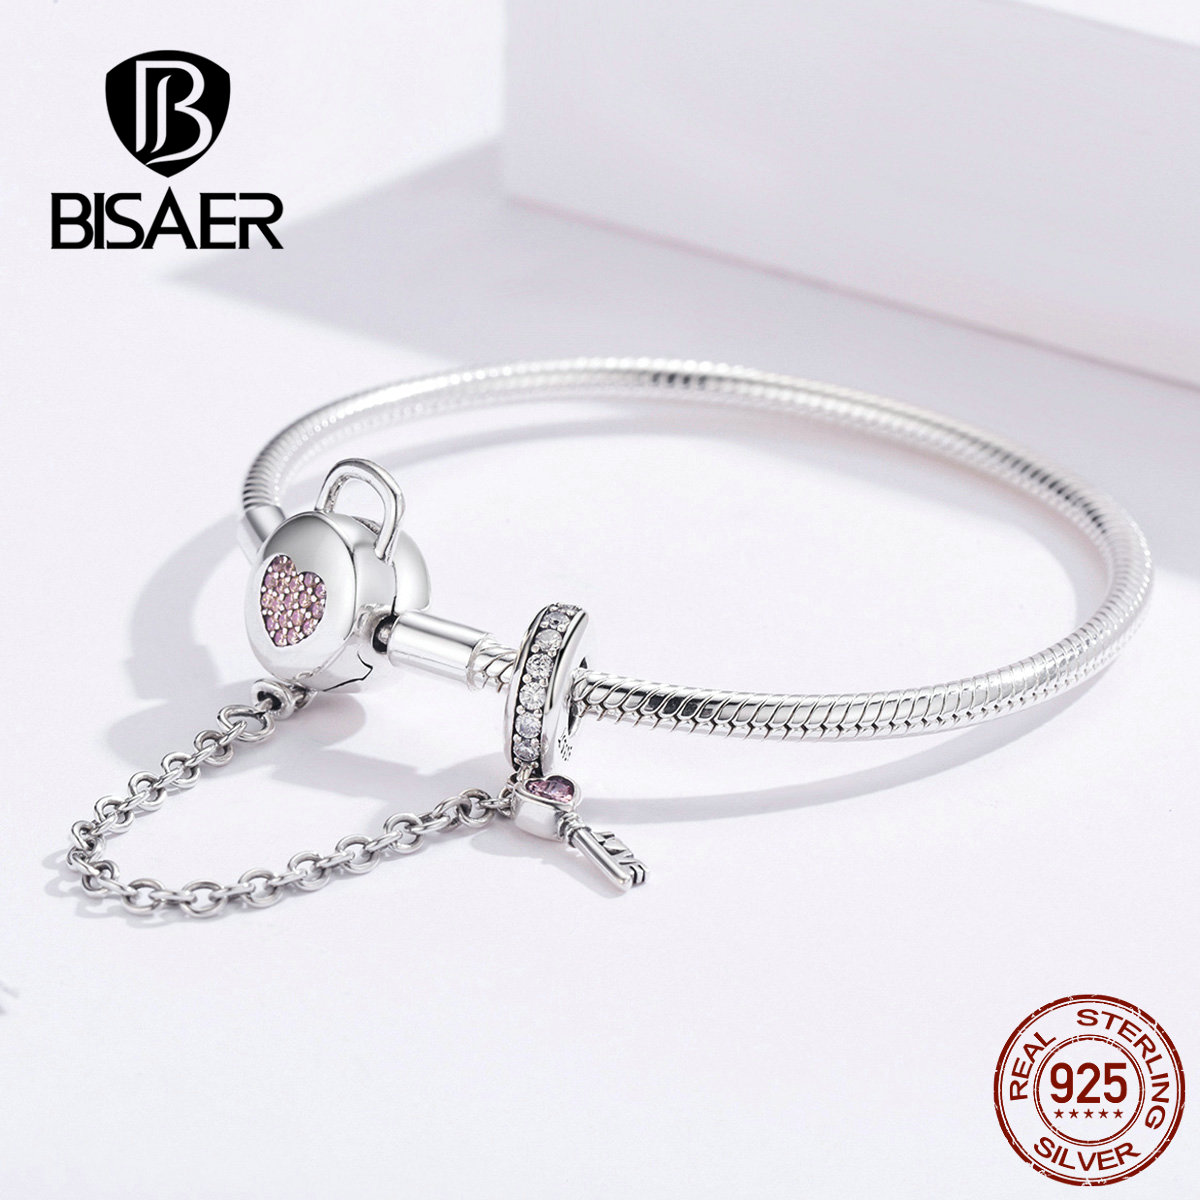 BISAER Trendy Pink Heart Safety Chain Bracelet 925 Sterling Silver Fit Original PAN Charms Beads Pendants Jewelry Making HSB143BISAER Trendy Pink Heart Safety Chain Bracelet 925 Sterling Silver Fit Original PAN Charms Beads Pendants Jewelry Making HSB143